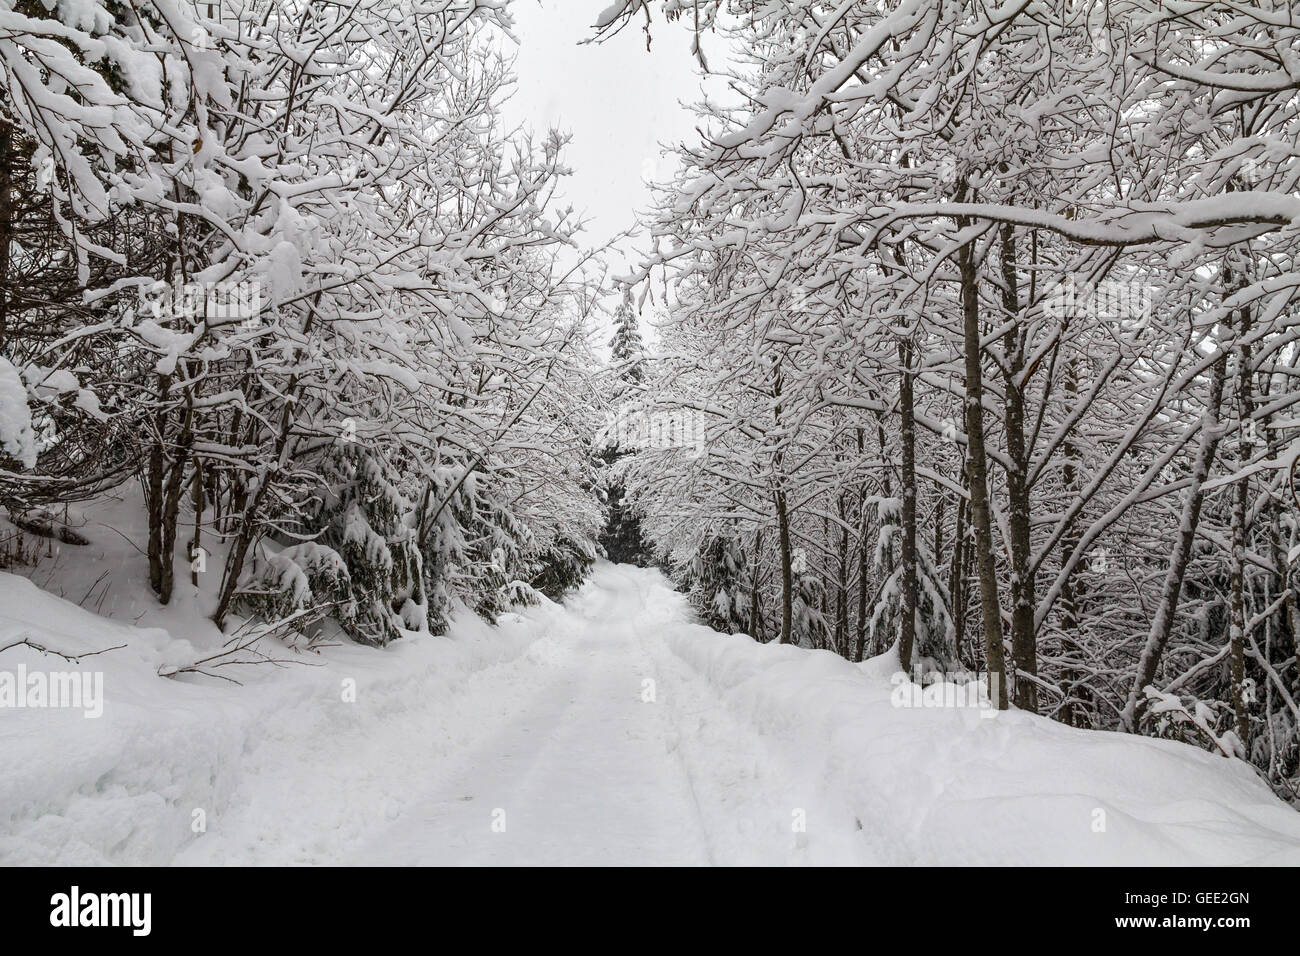 Fresh snow on trail through corridor of deciduous trees - Stock Image